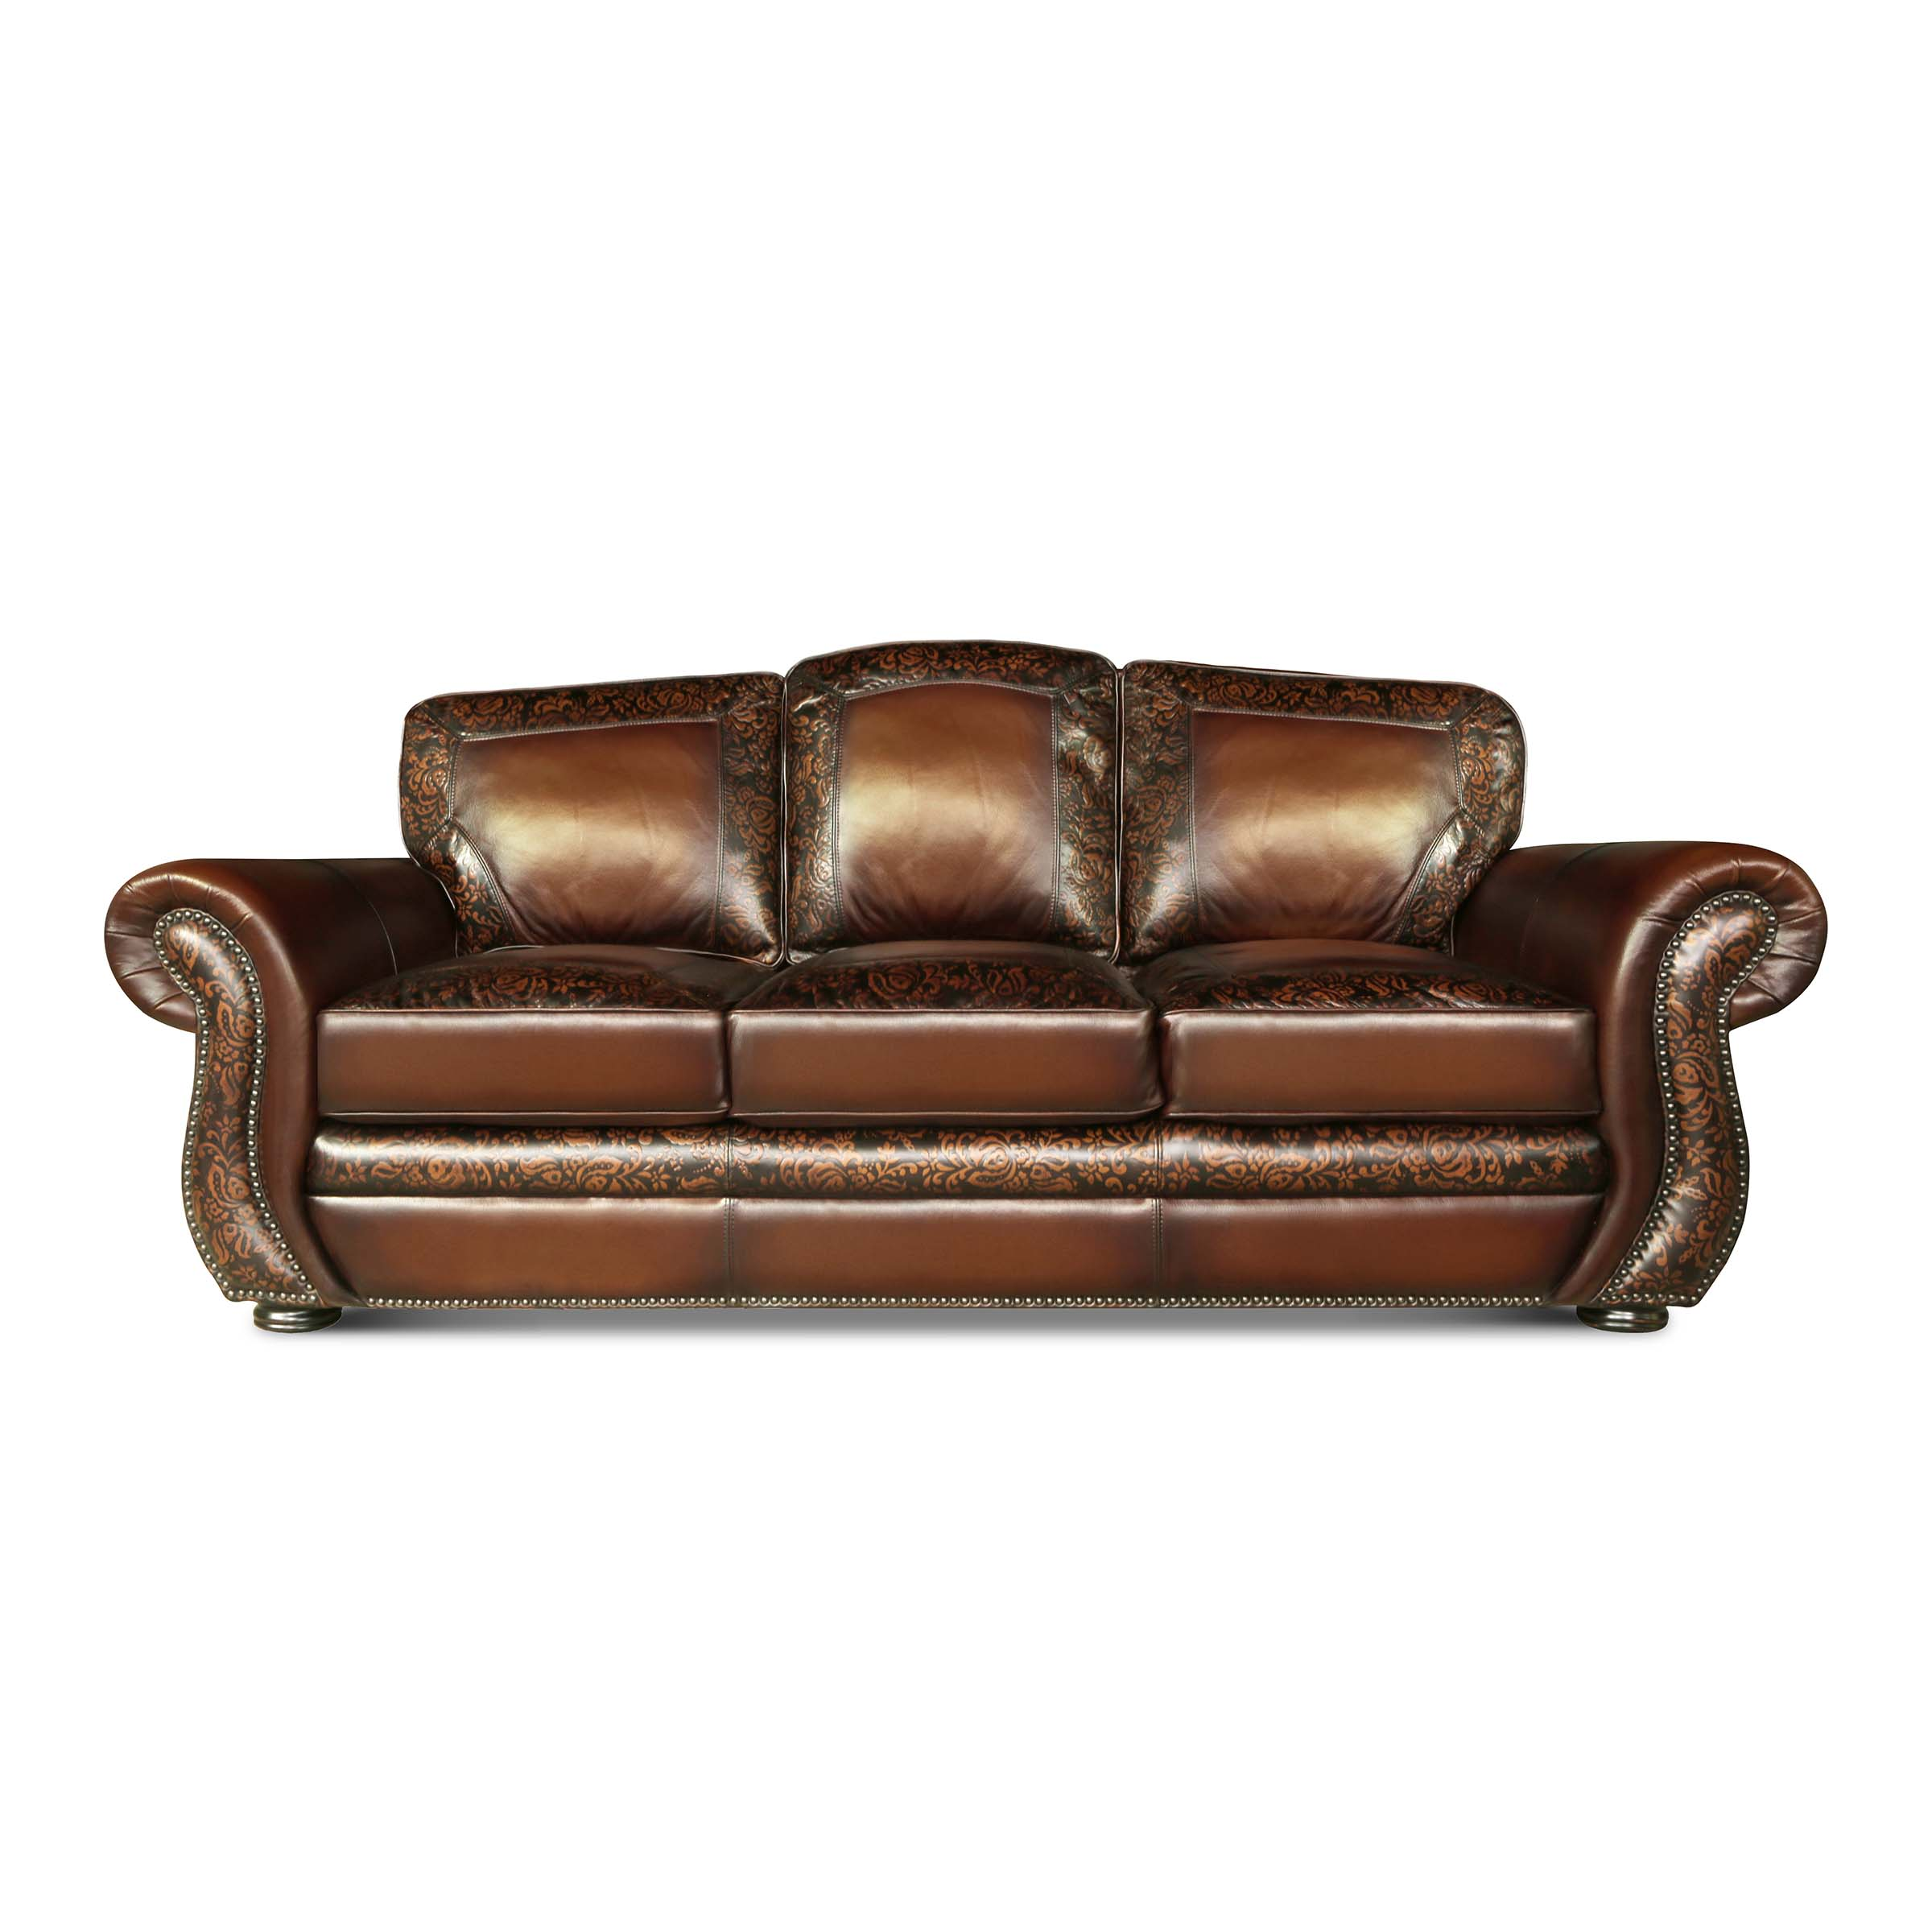 BALLENTINE - 30 Sofa Maestro Artisano Saddle Damask Hand Tooled Leather